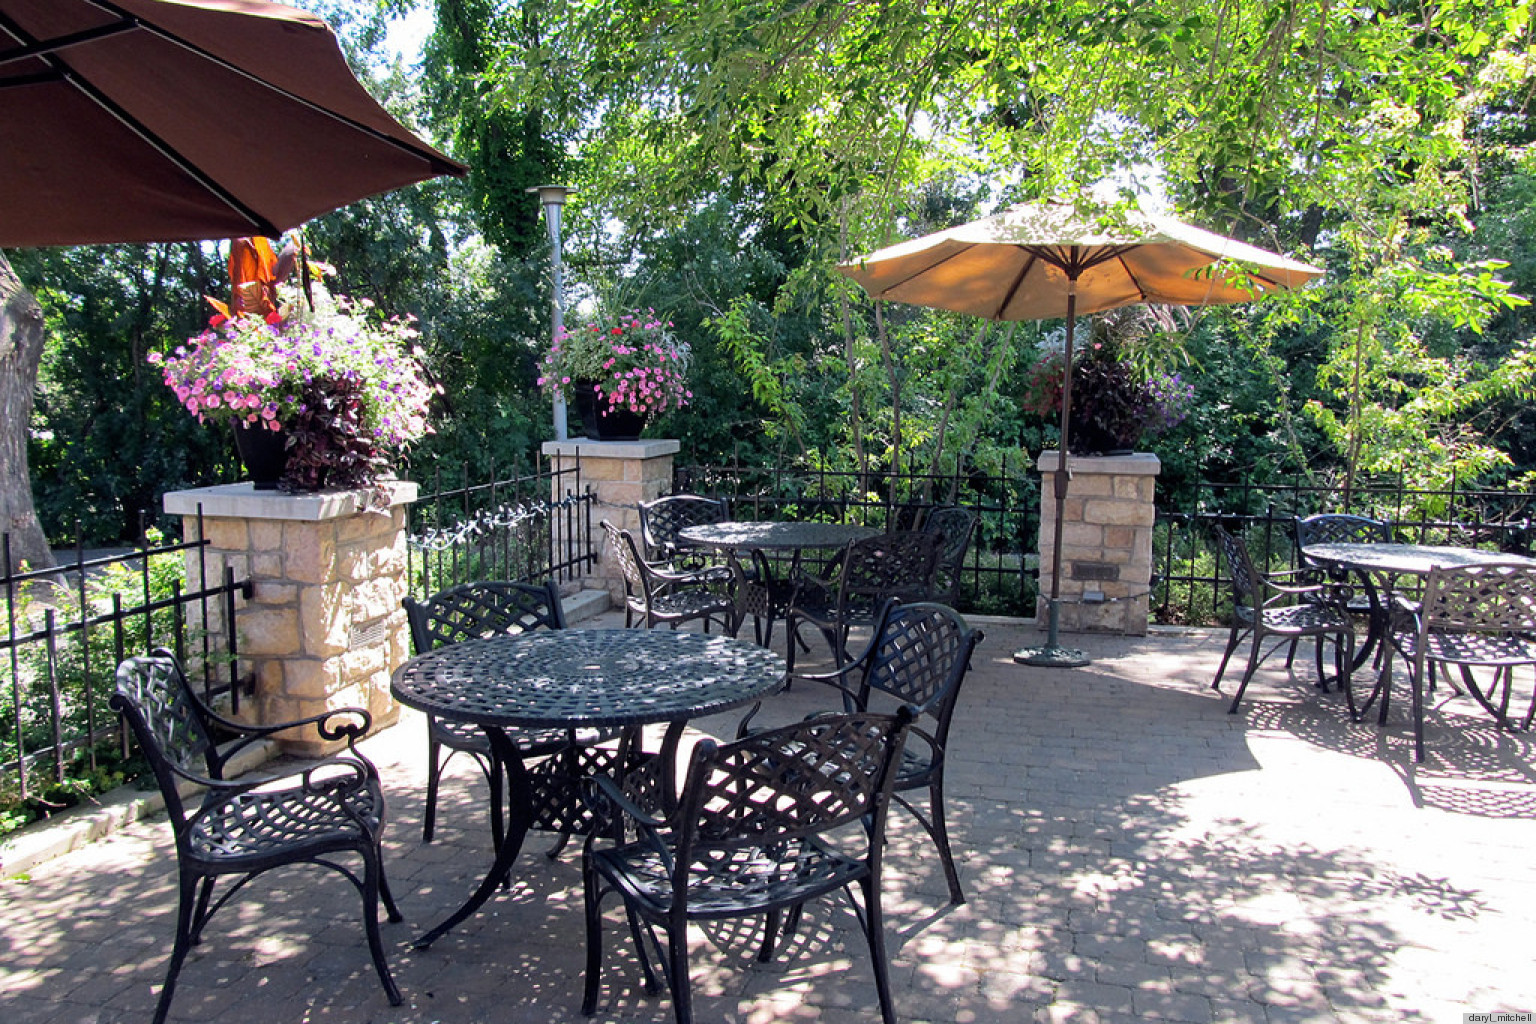 8 Pretty Patios That Have Us Wishing We Were Kicking Back ... on Beautiful Patio Designs id=33940